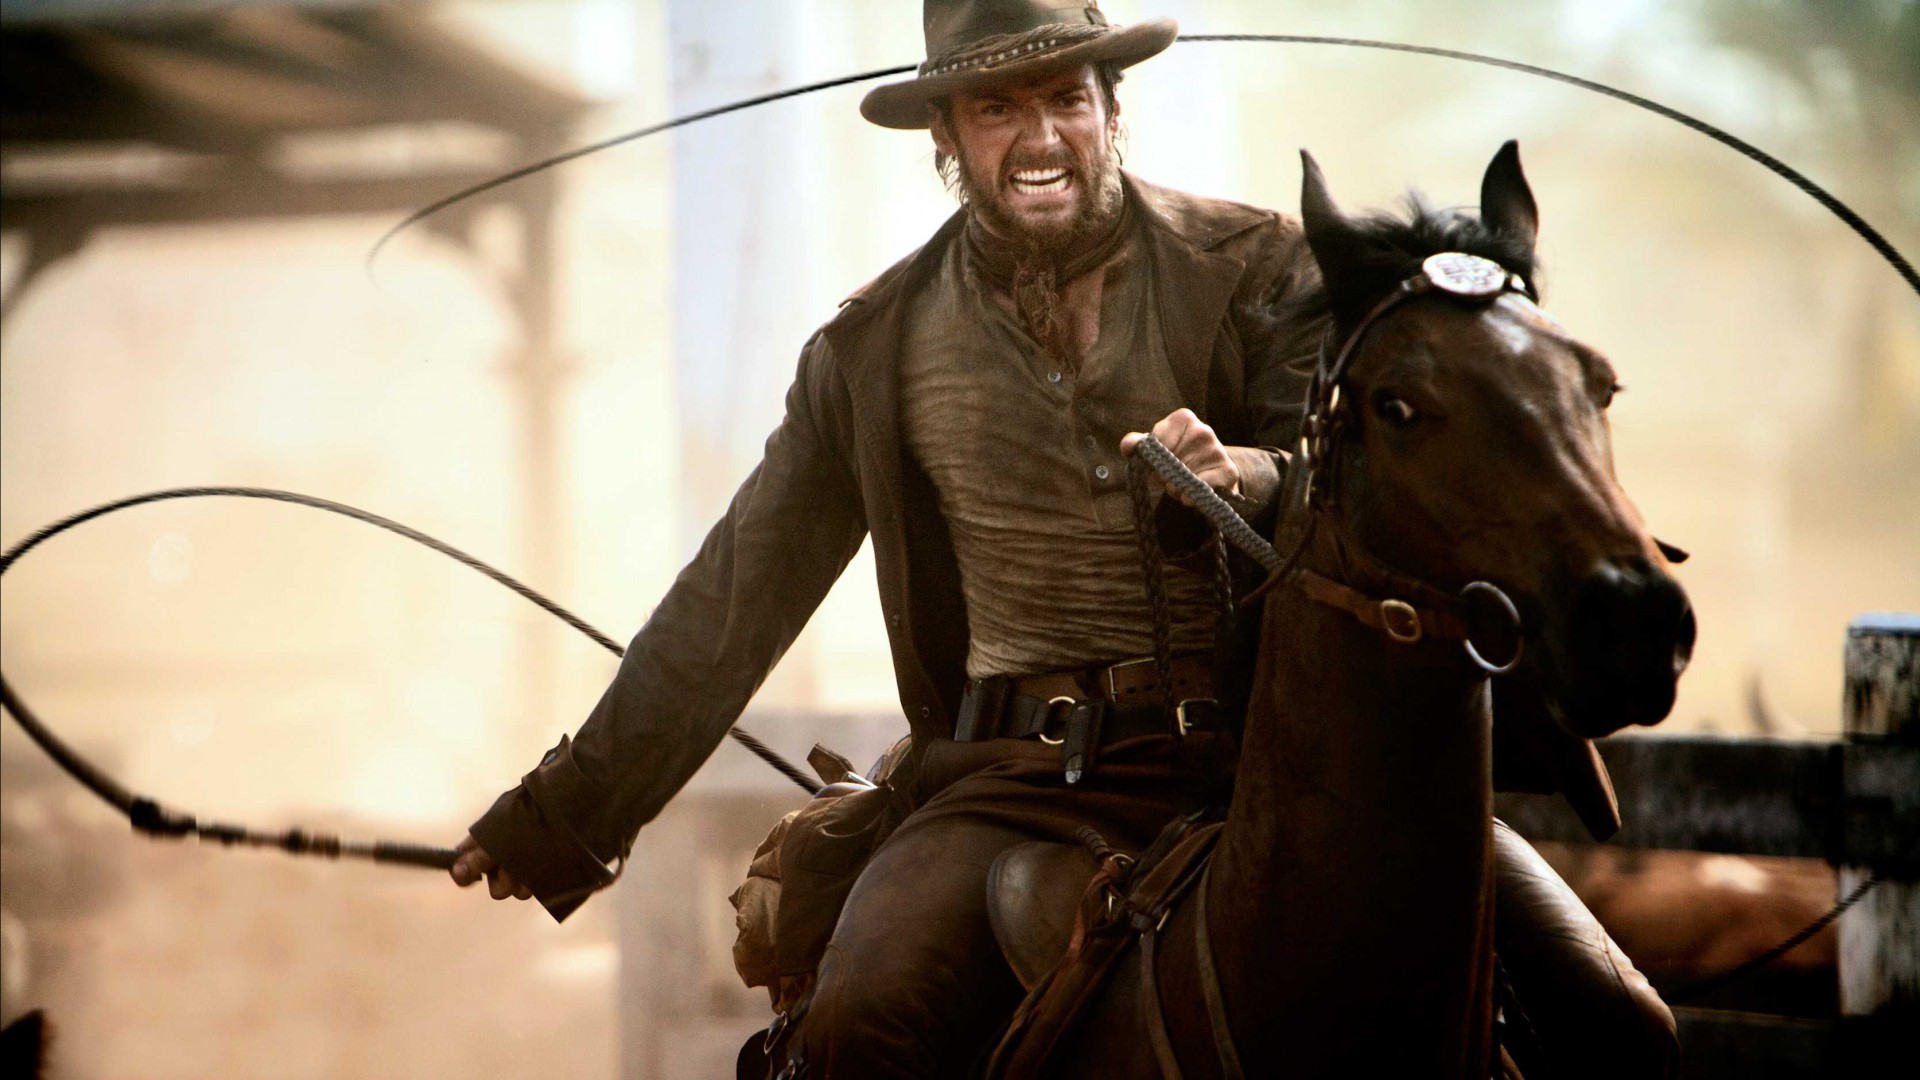 Hugh Jackman, Most Popular Celebs in 2015, actor, cowboy, horse